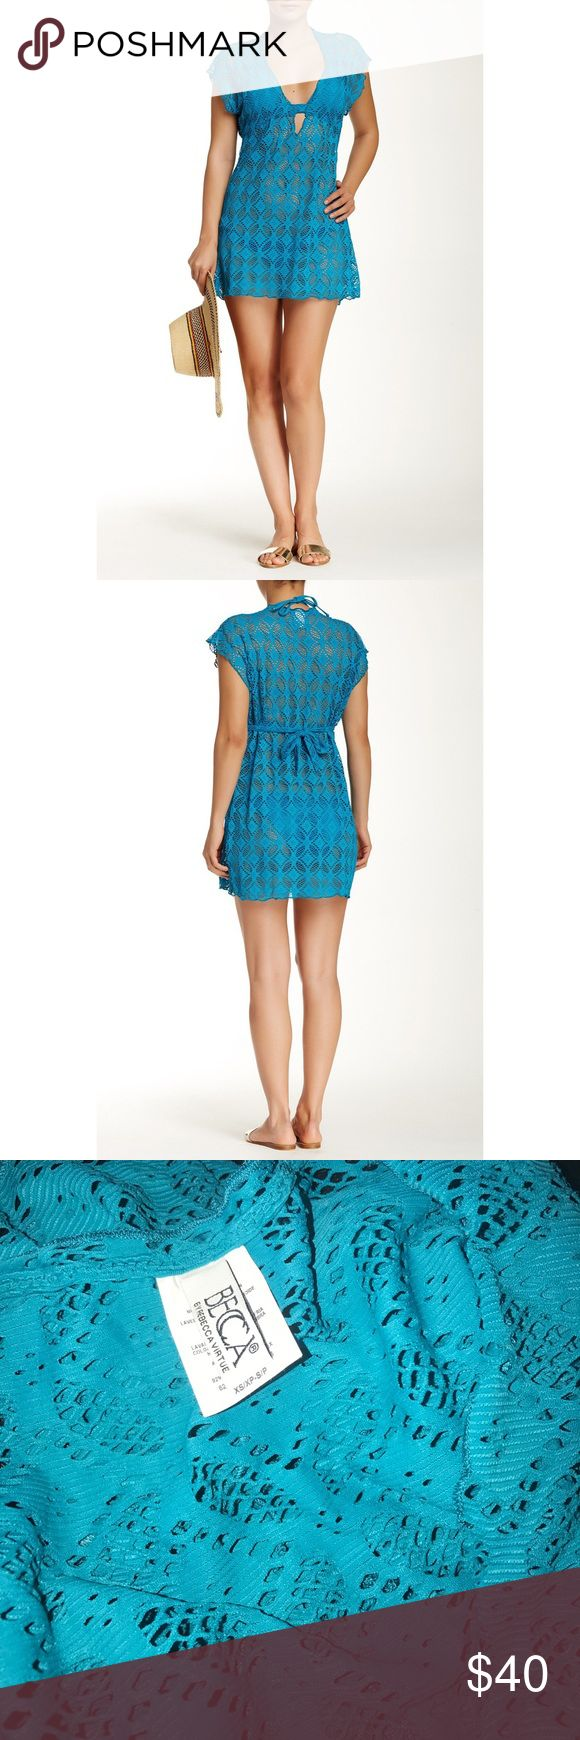 """BECCA Ritual Crochet Tunic Swim Cover-up Dress New BECCA Teal Blue Ritual Crochet Tunic Swim Cover-up Mini Dress Size XS/S   Slip on this sheer crochet tunic for just the right amount of beach or poolside coverage. - V-neck - Short sleeves - Back tie closure - Sheer crocheted construction - Approx. 33"""" length  Fiber Content 92% nylon, 8% spandex   Hand wash cold Additional Info Fit: this style fits true to size.  Model's stats for sizing: - Height: 5'7"""" - Bust: 32"""" - Waist: 24"""" - Hips: 34""""…"""